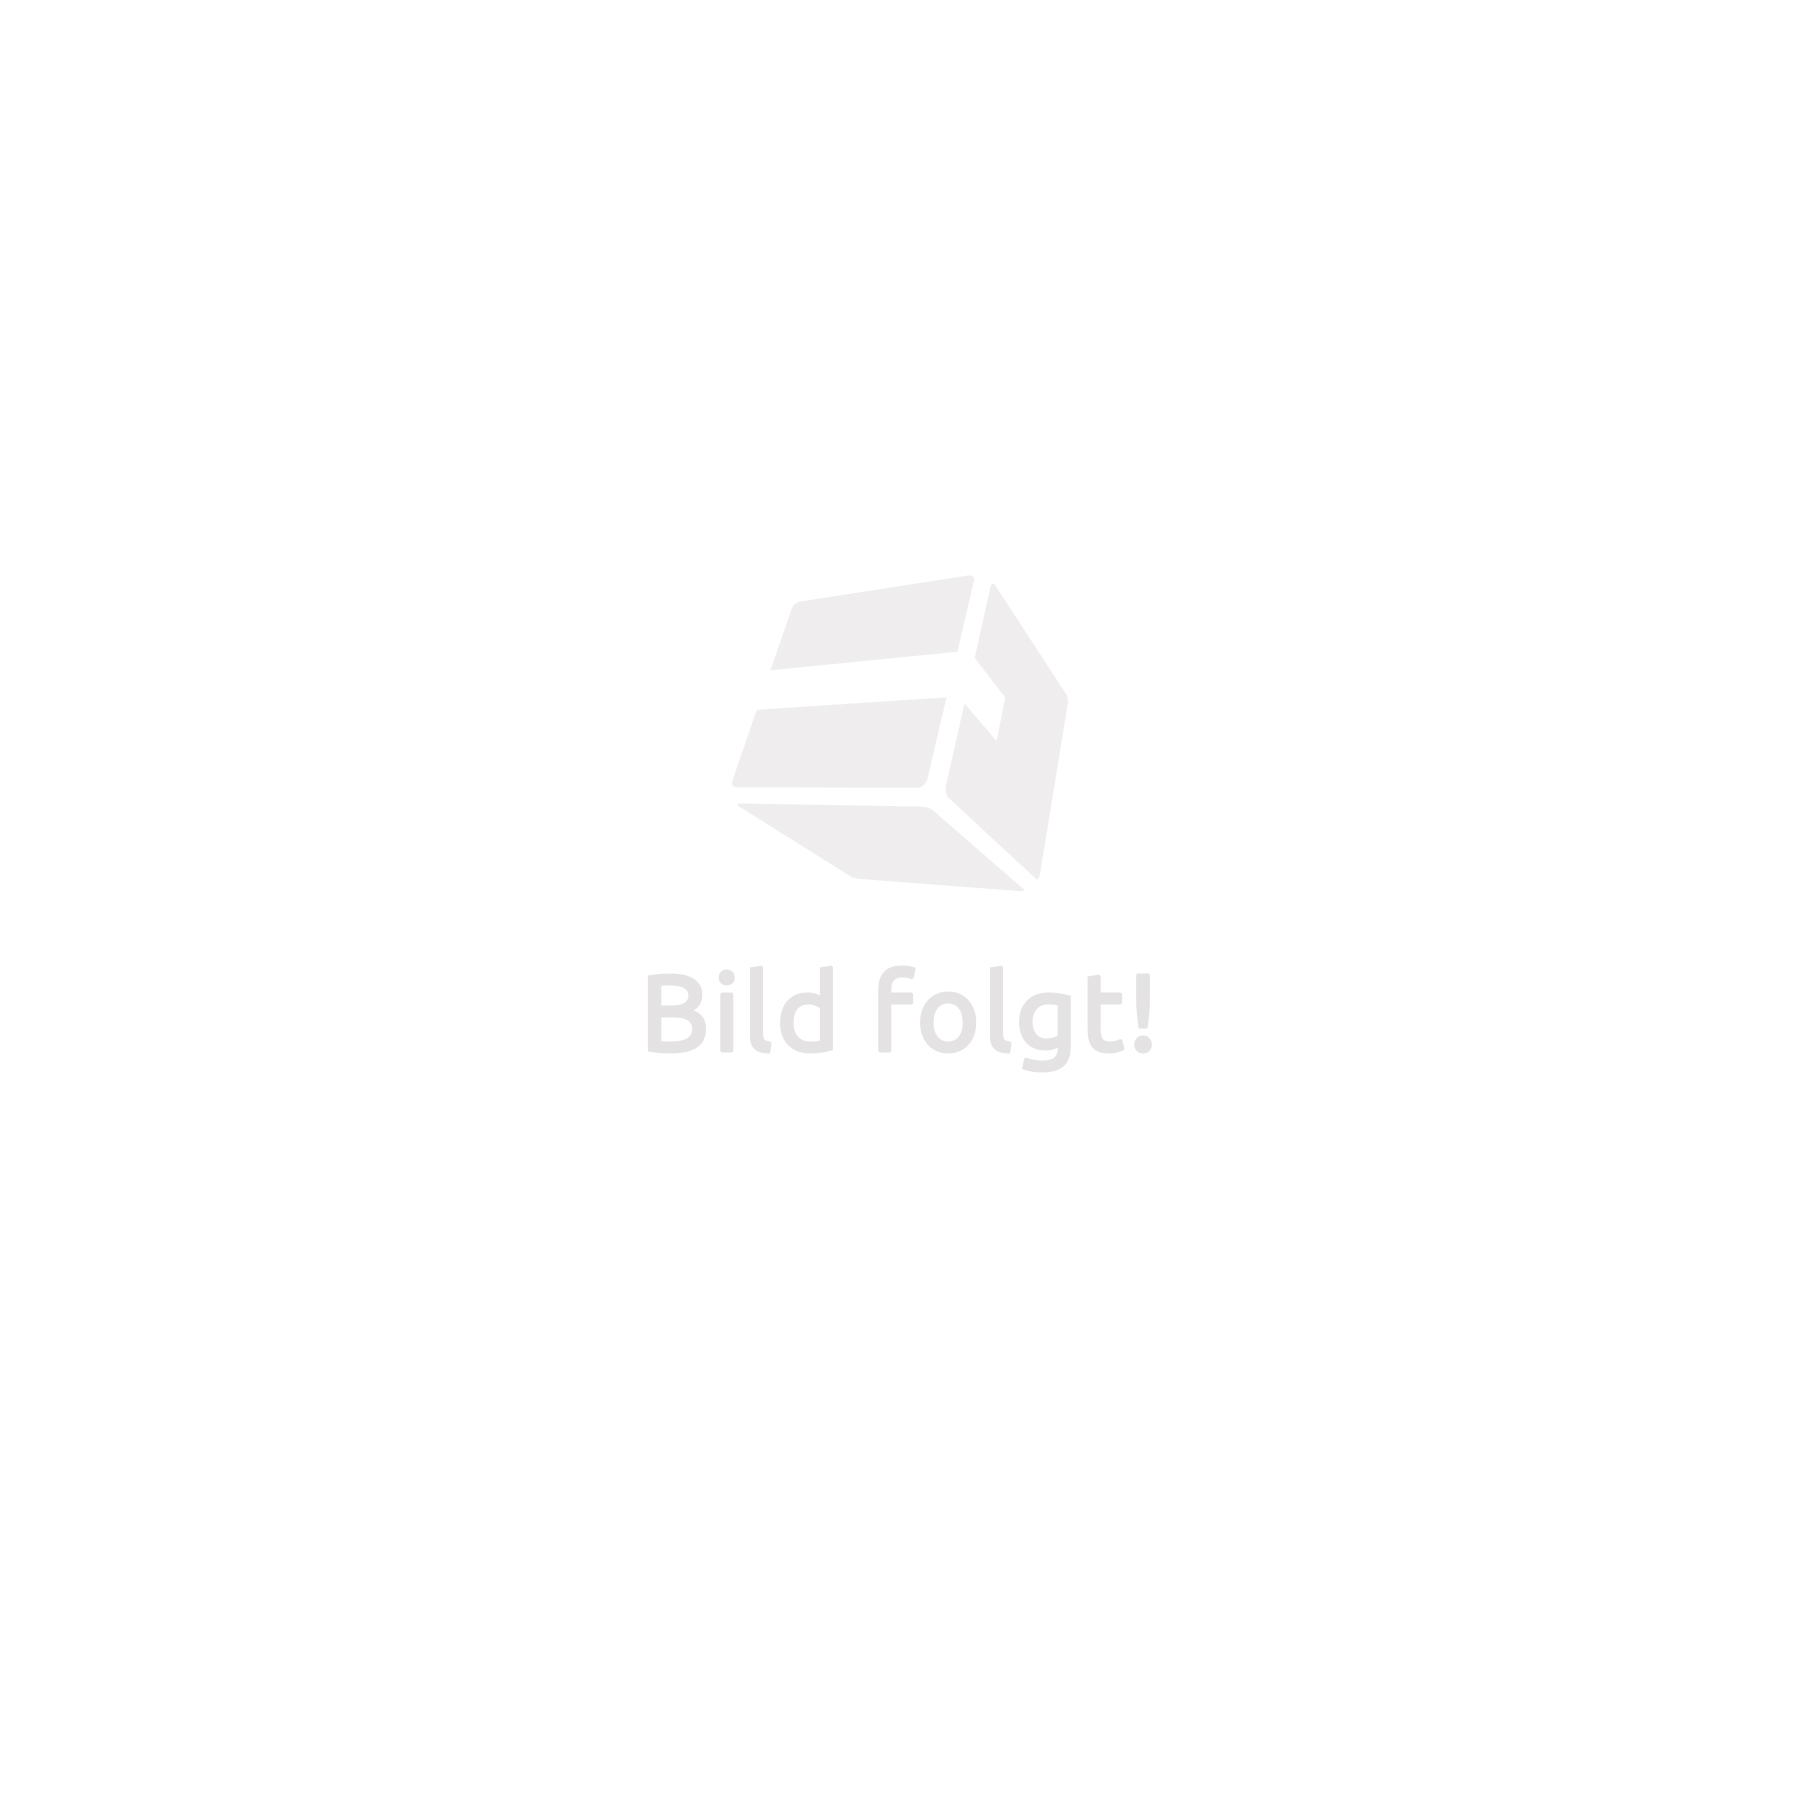 Abri de plage, POP UP, Parasol, Protection UV + Sac orange